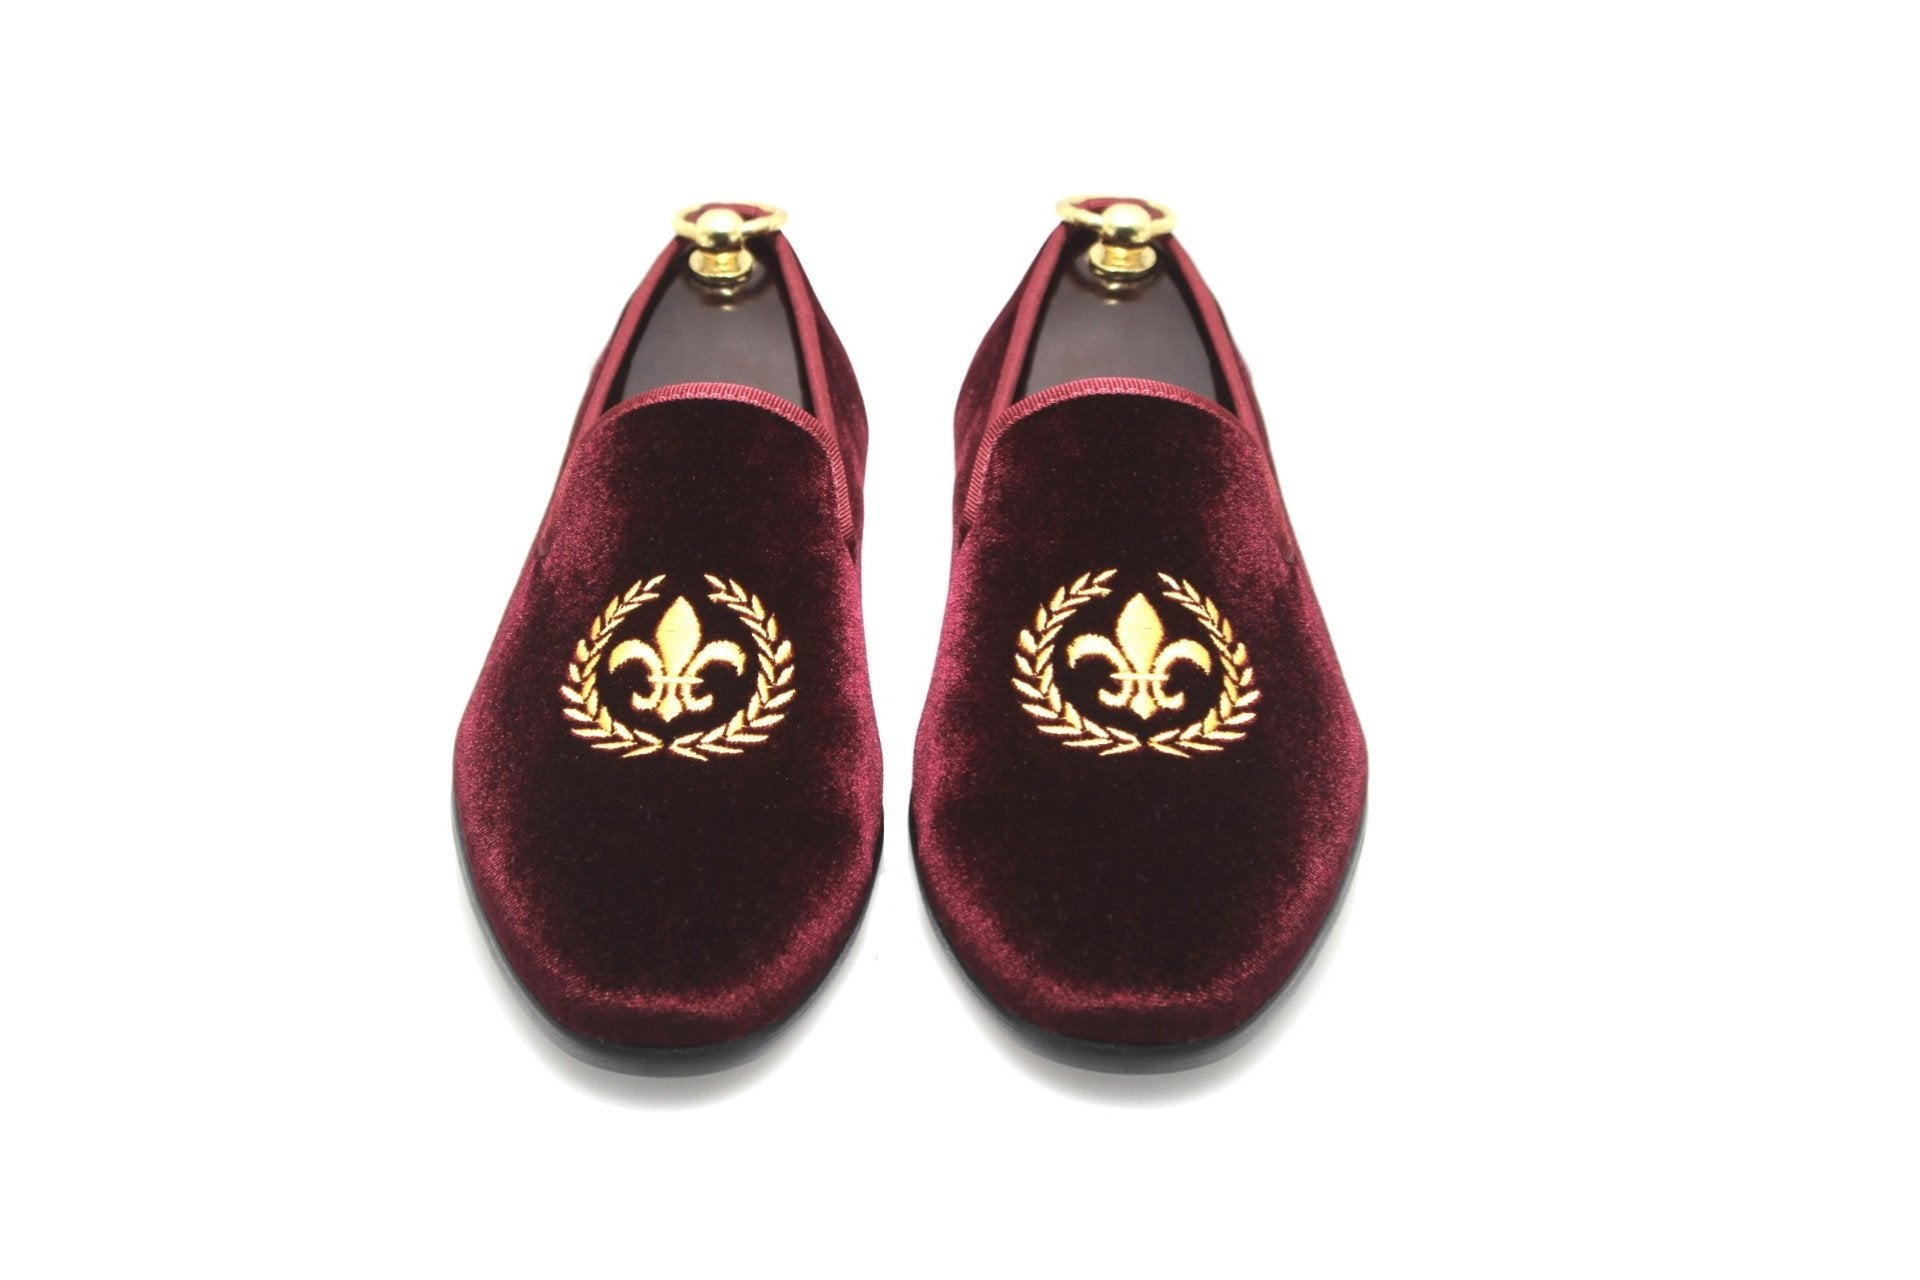 Smythe & Digby Men's Albert Slippers Fleur de Lis Embroidered Burgundy Velvet Loafers